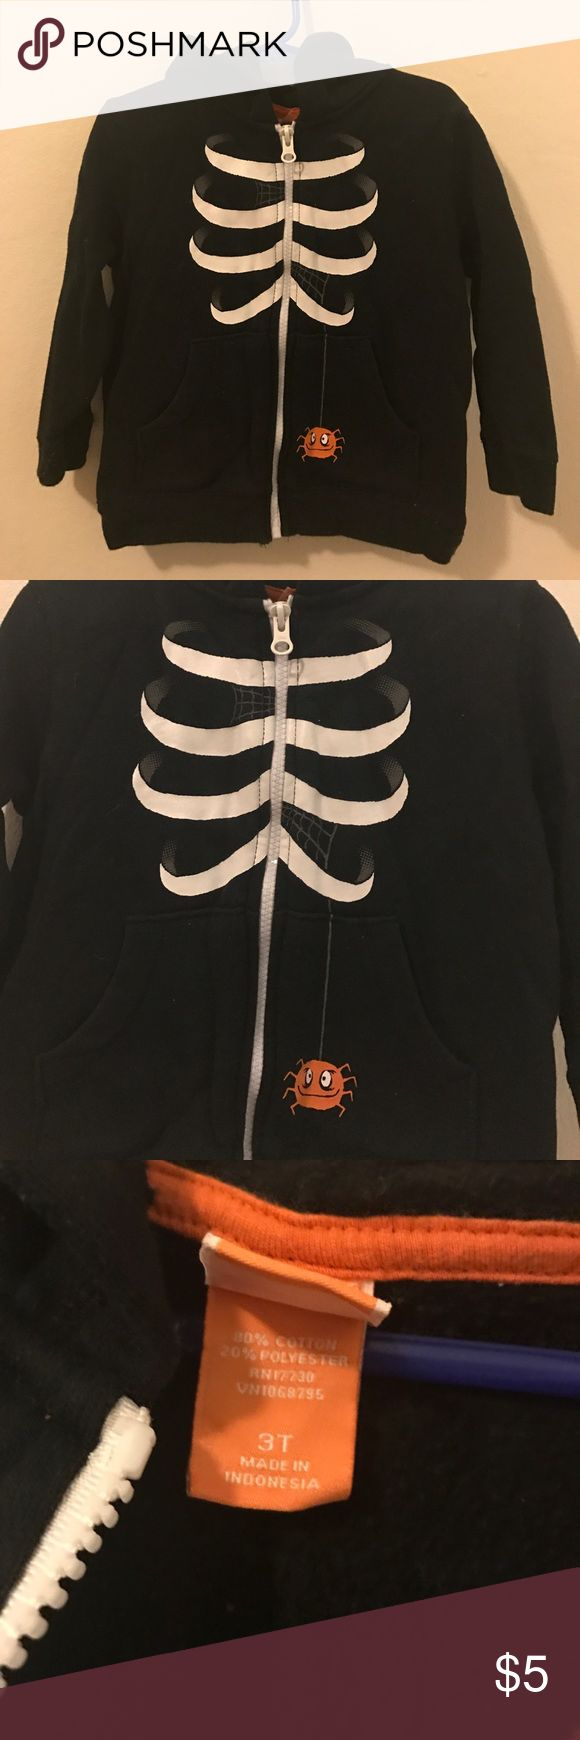 Skeleton and spider zip up Halloween hoodie Size 3T black hoodie with a white zipper, with a fun little rib cage of a skeleton and a little orange spider hanging out on the the left pocket. Everything in awesome condition. No pulls, or issues. Please ask questions if you have them! 🖤 Target Shirts & Tops Sweatshirts & Hoodies